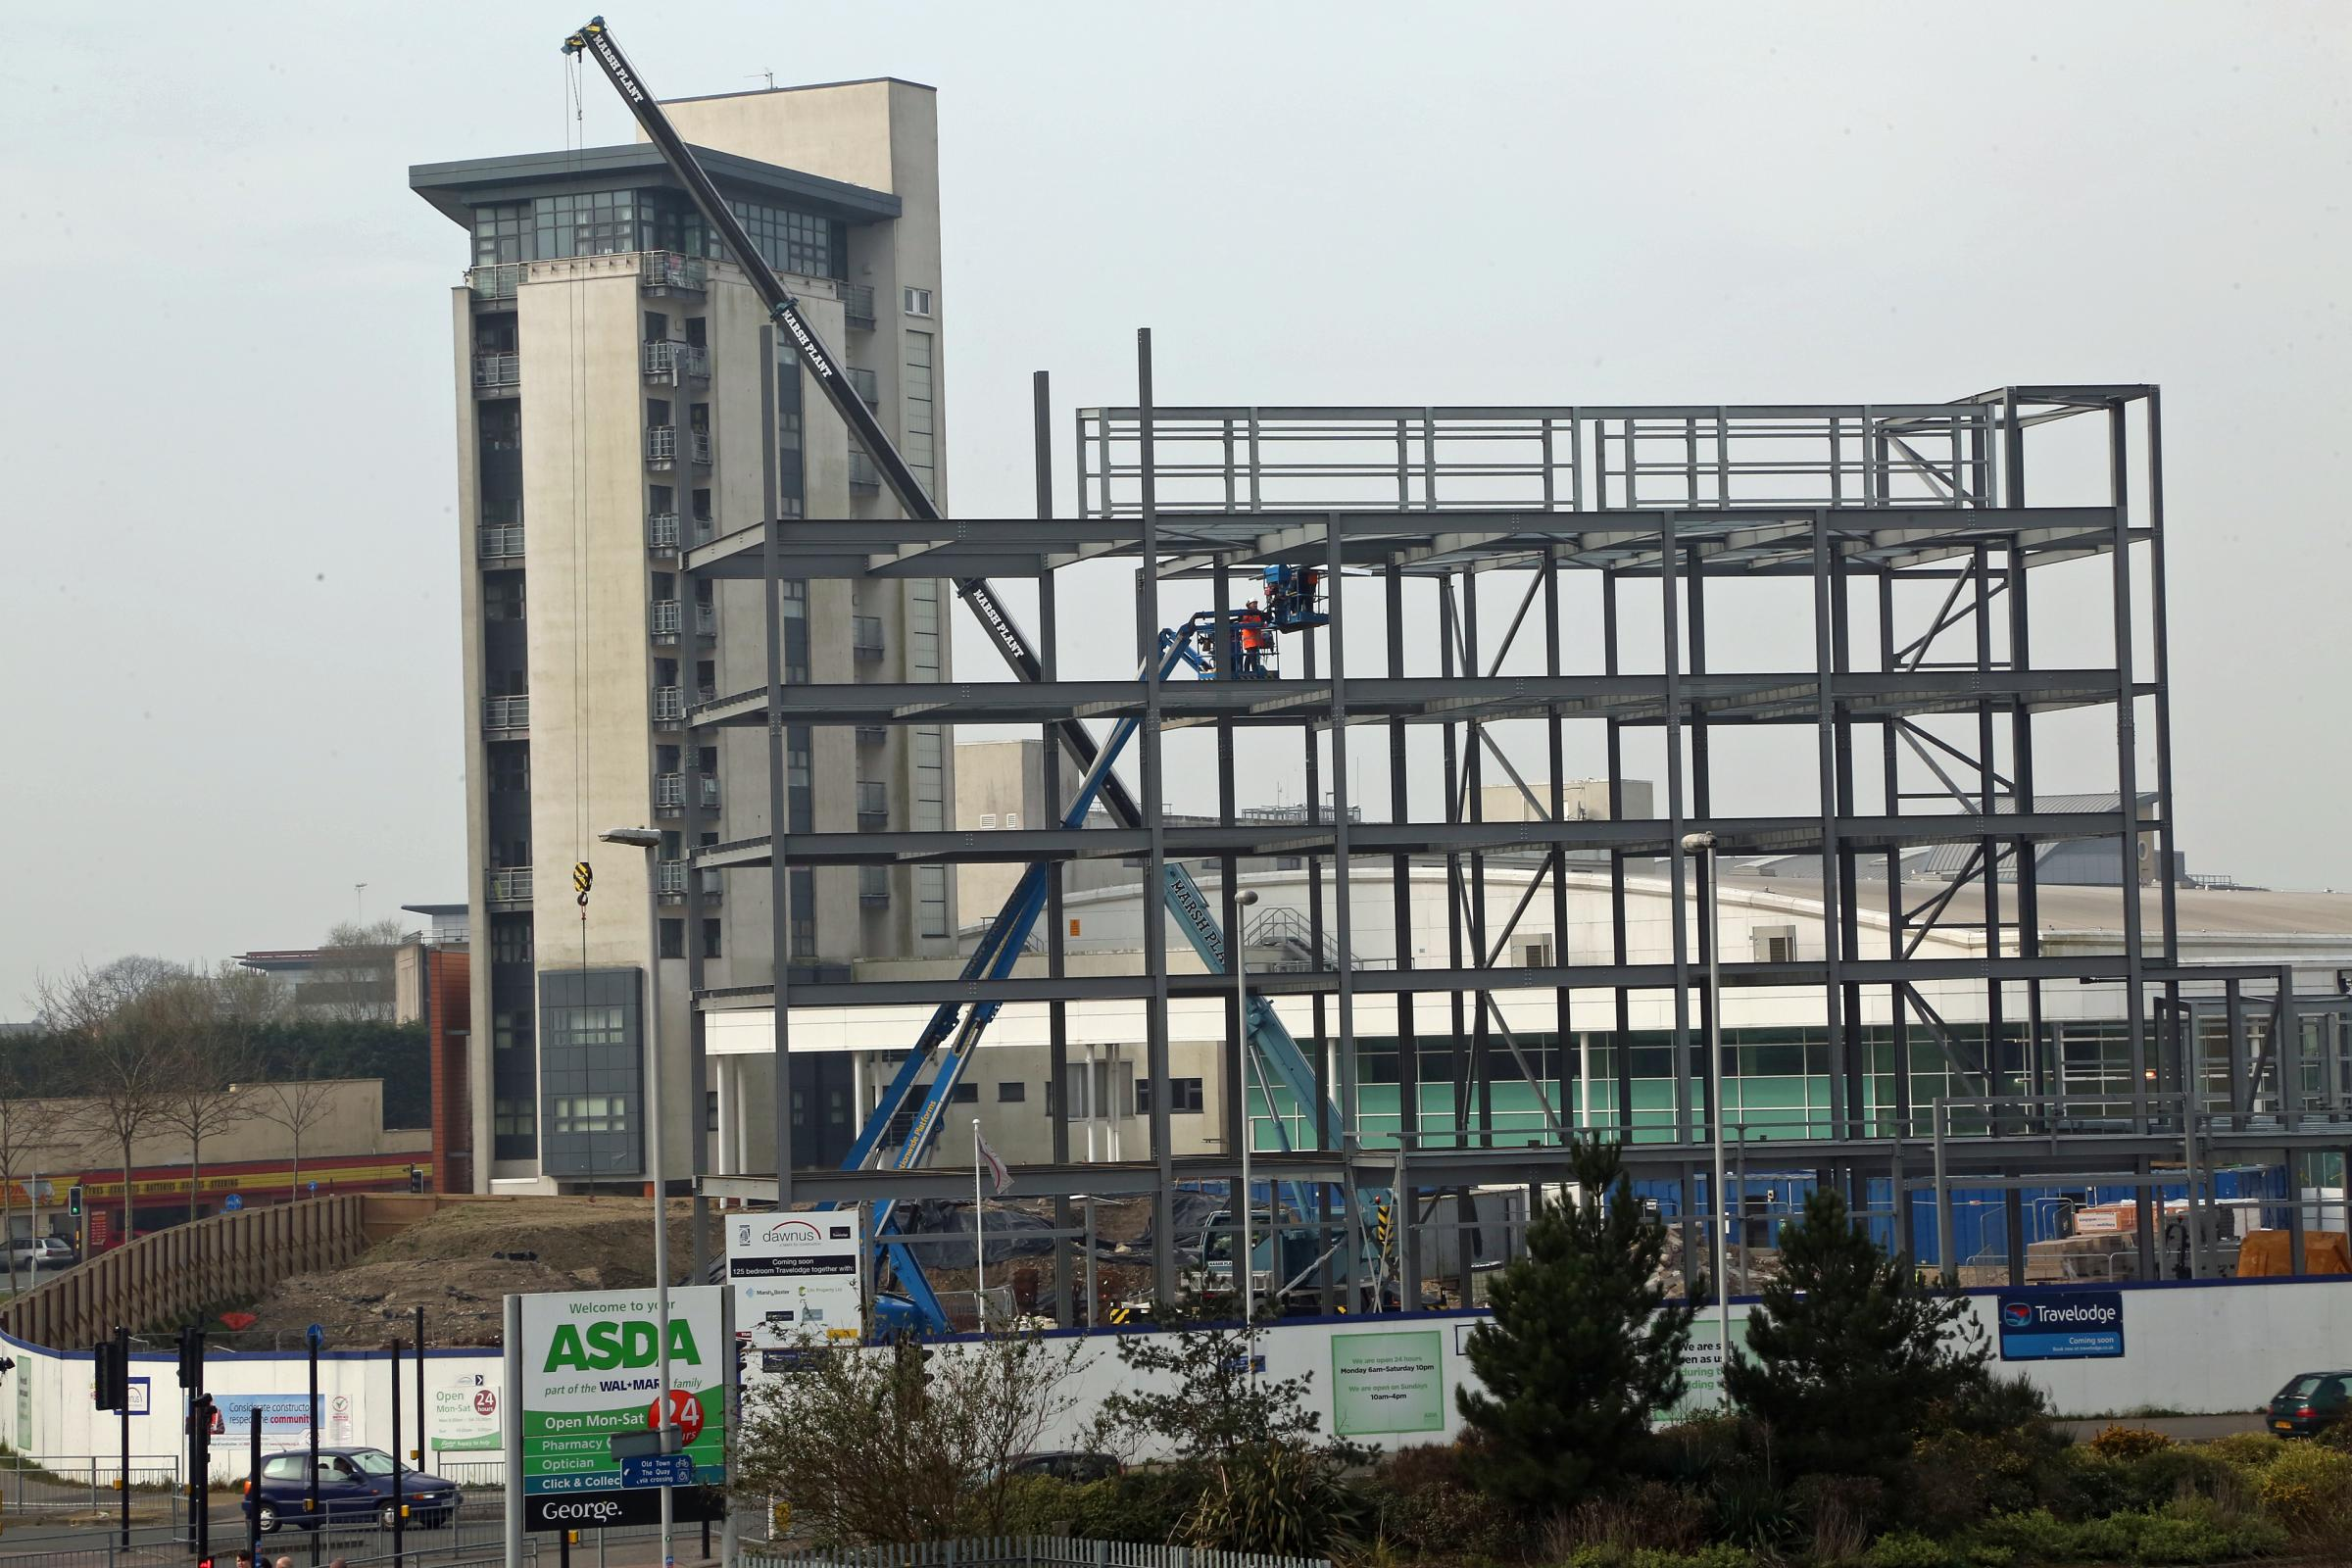 New Look Travelodge In Poole Starting To Take Shape From - Travelodge location map uk